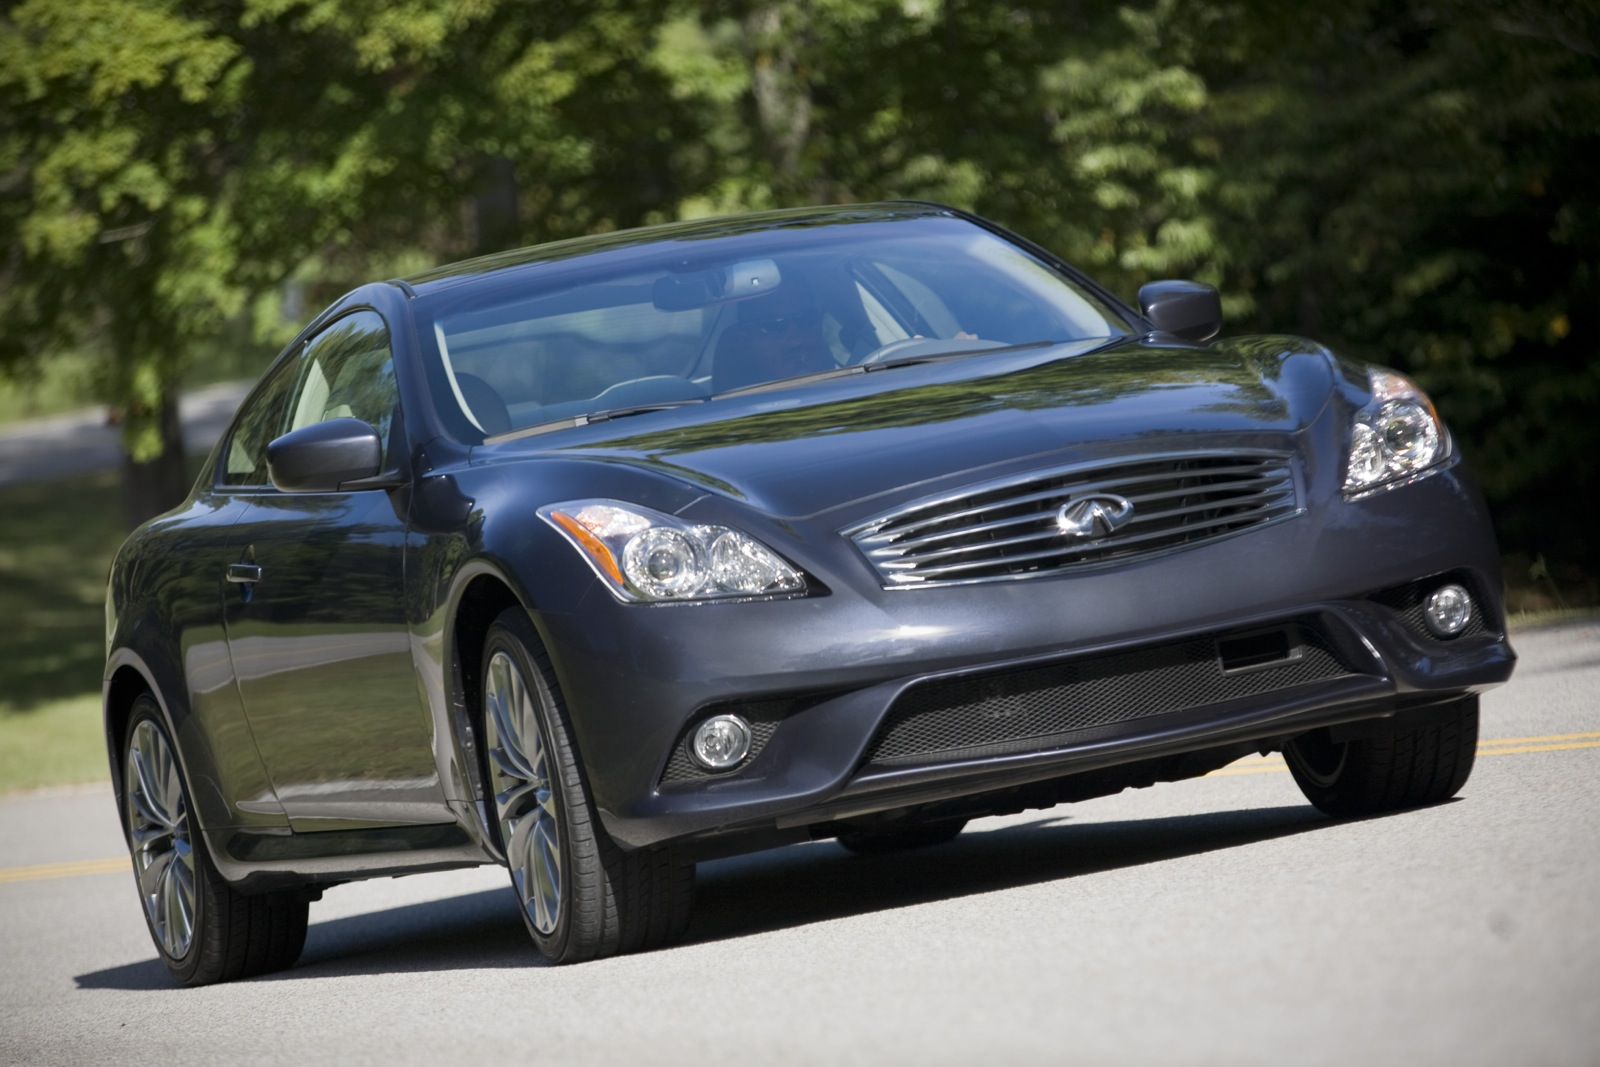 2012 infiniti g37 coupe gas mileage the car connection vanachro Image collections